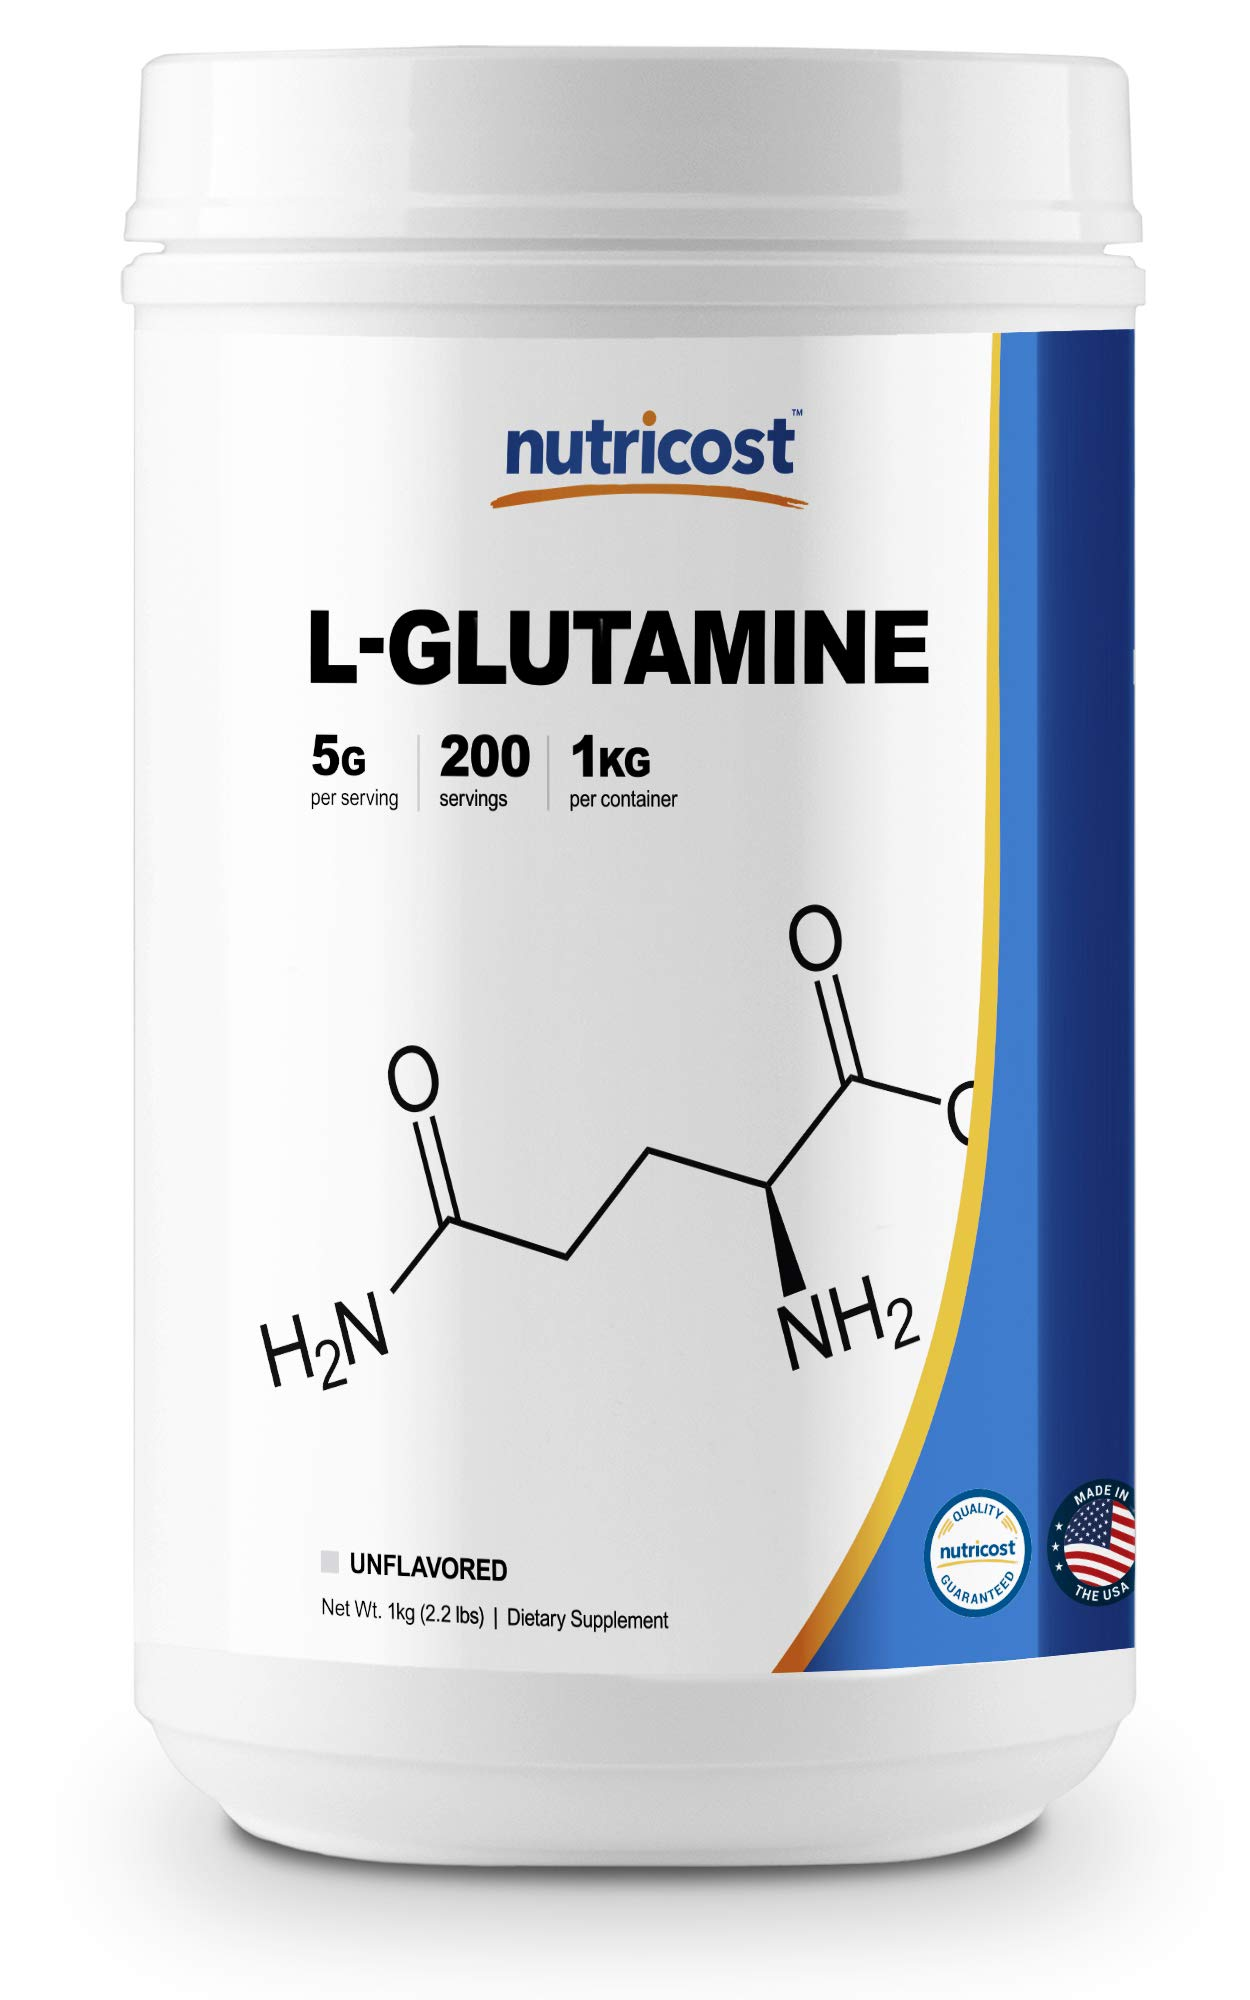 Nutricost L-Glutamine Powder 1 KG - Pure L Glutamine - 5000mg per Serving - High Purity by Nutricost